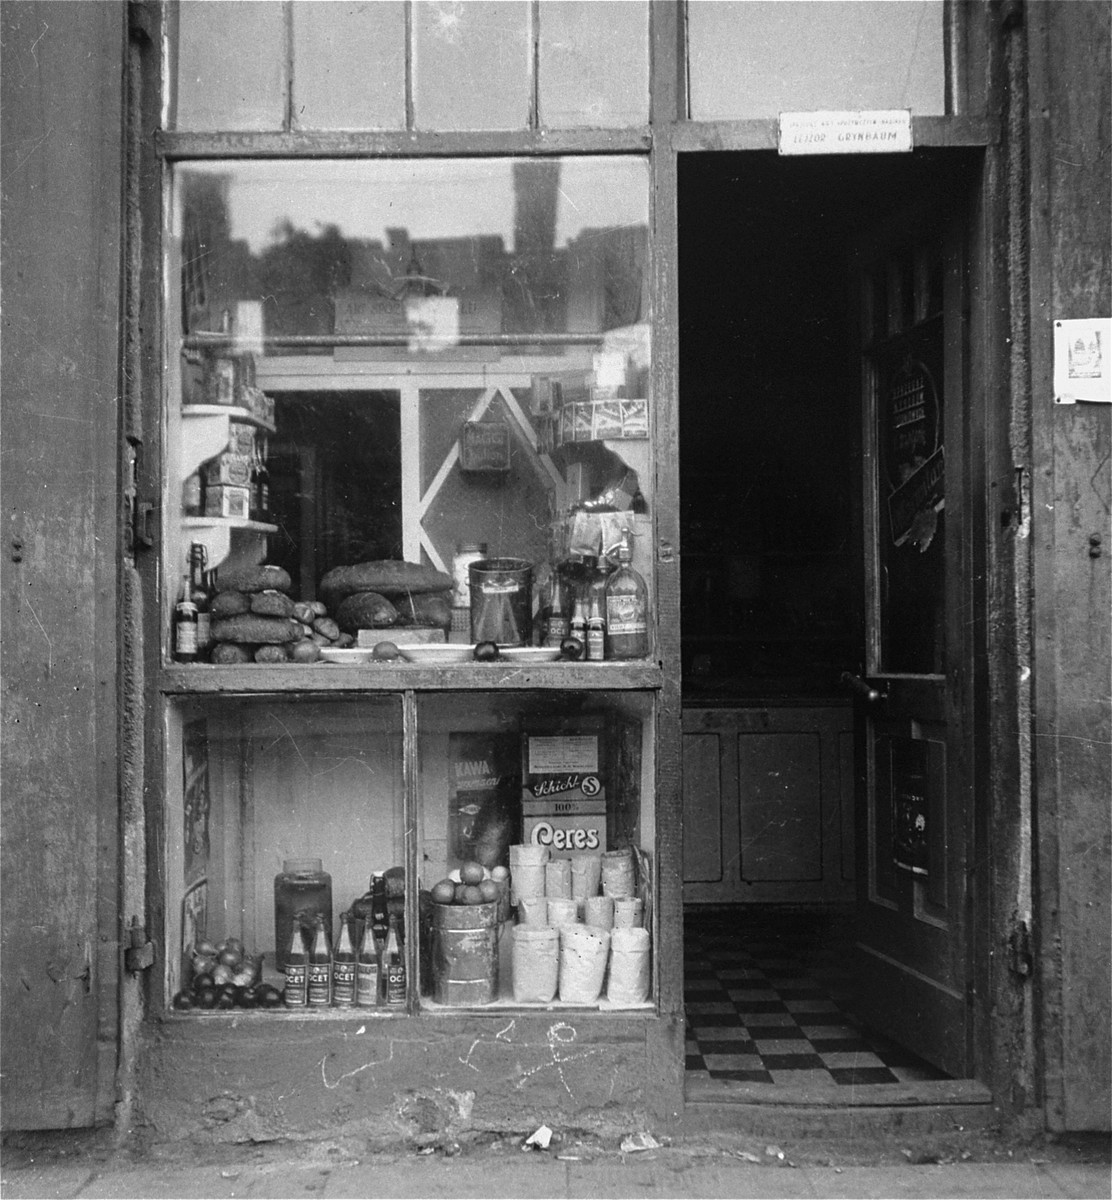 """The front of a small ghetto grocery store owned by Lejzor Grynbaum.    Joest's original caption reads: """"This was a small shop.  To me the name Grynbaum stood out.  There were onions, soda water, bread, packages of soup, and dried fruit.  I saw no one shopping there."""""""